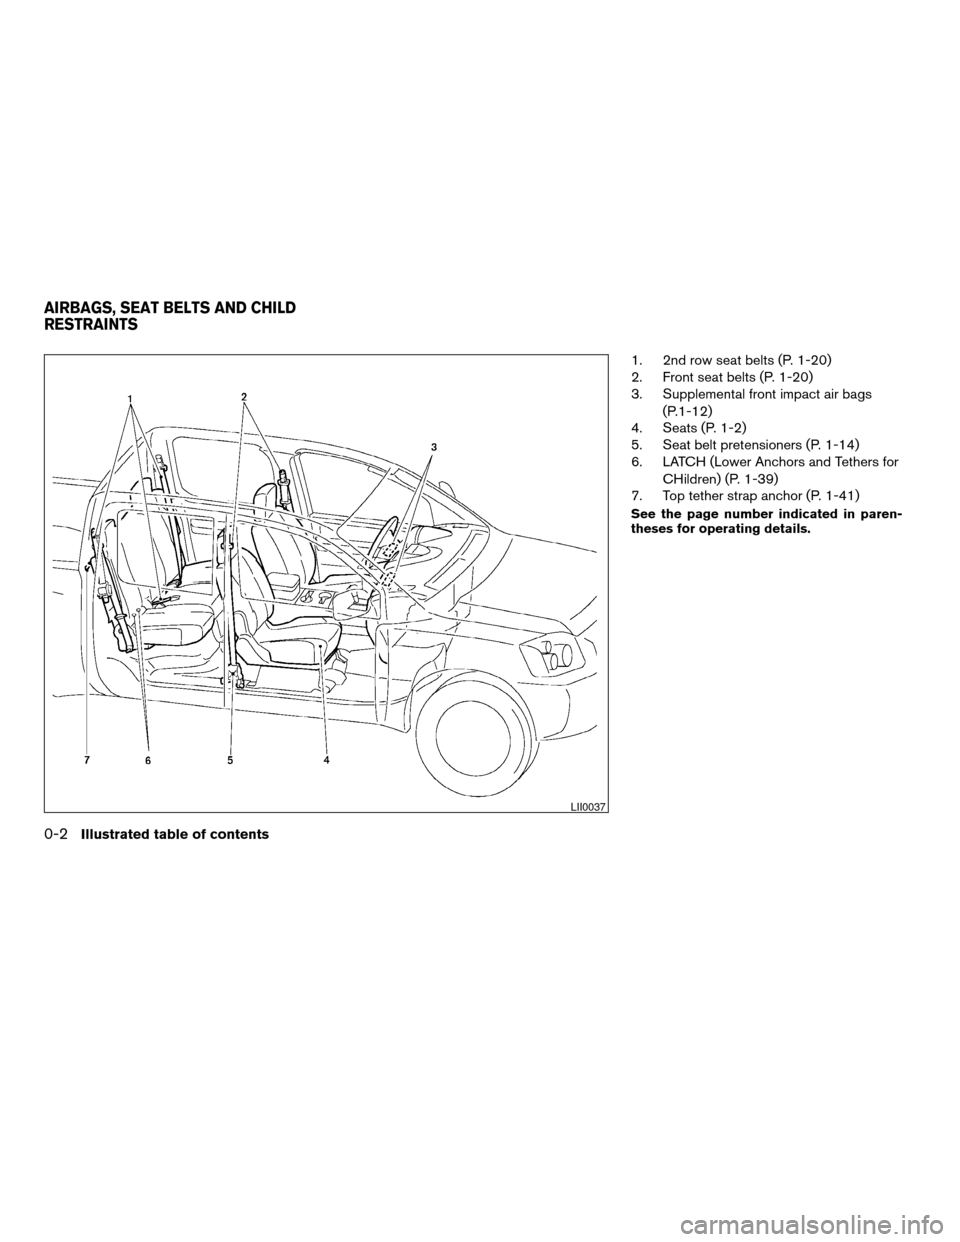 2003 nissan frontier repair manual pdf